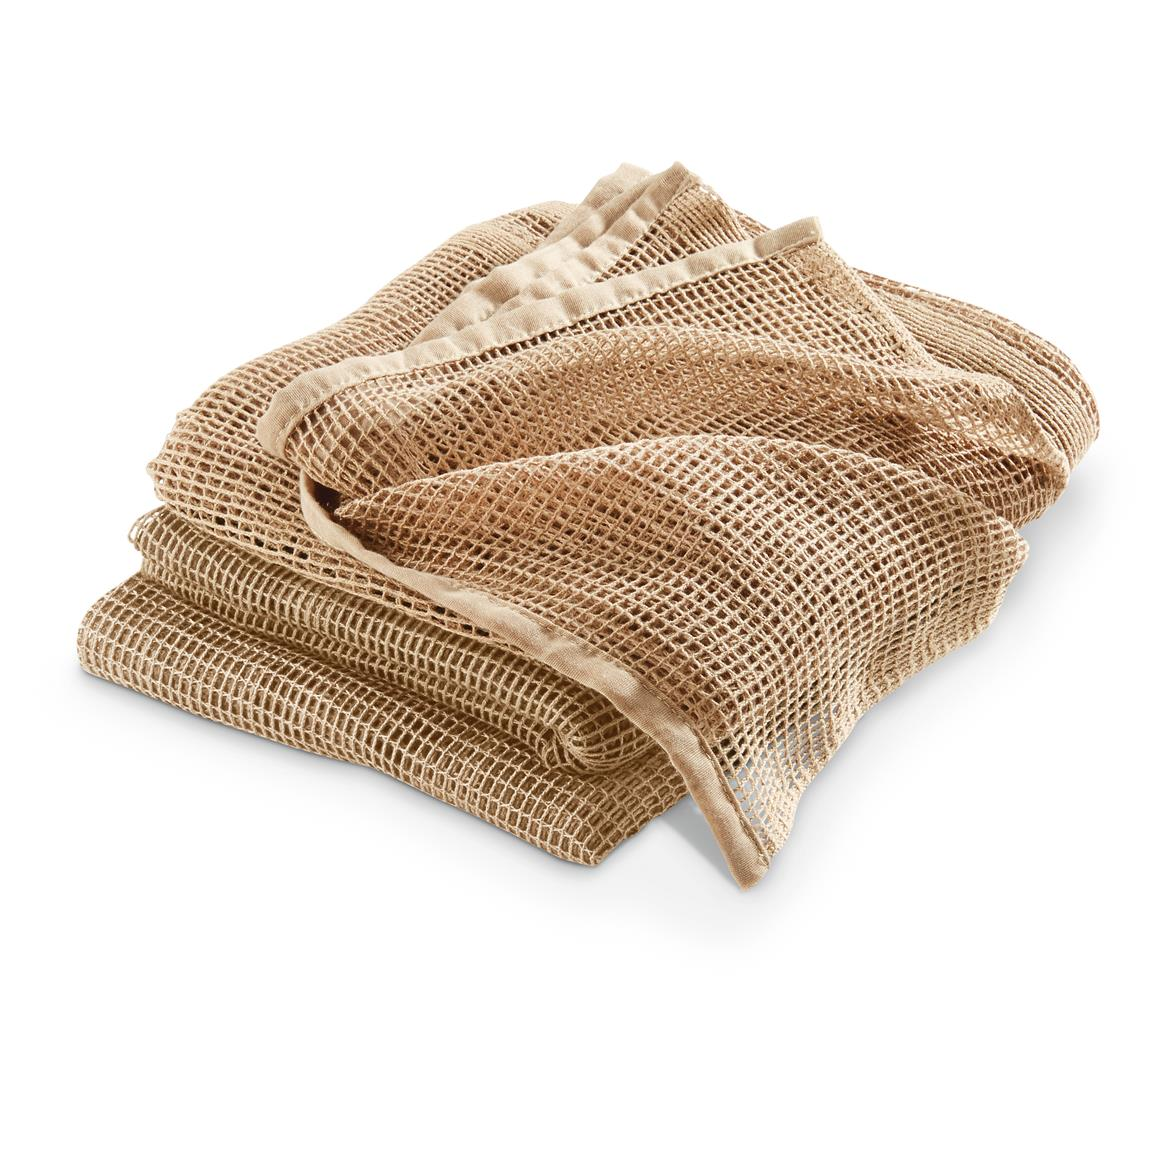 3 Red Rock Outdoor Gear™ Sniper Veils, Coyote Tan